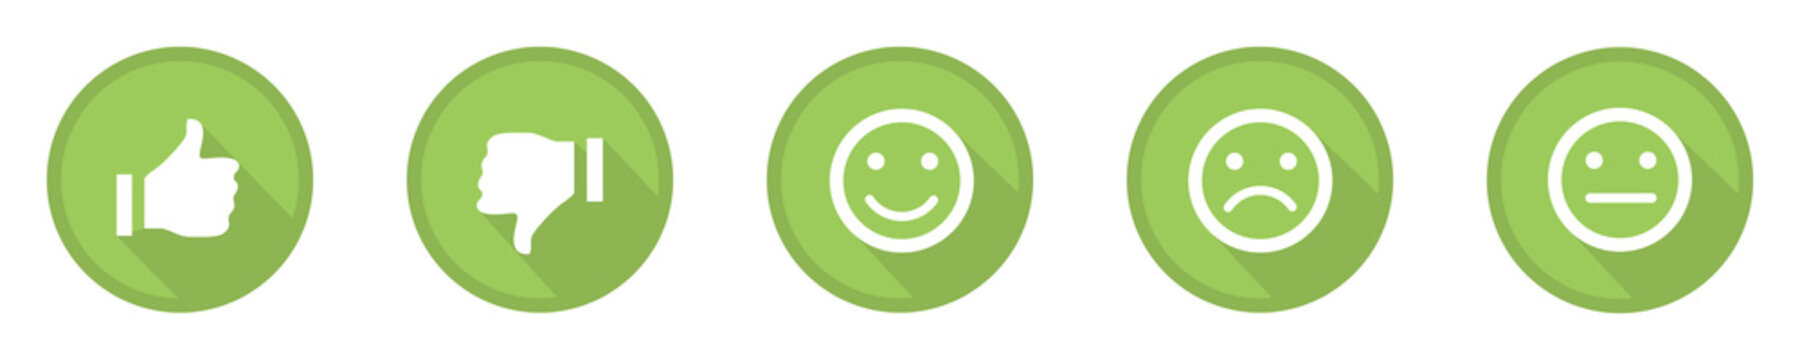 green business feedback top icons